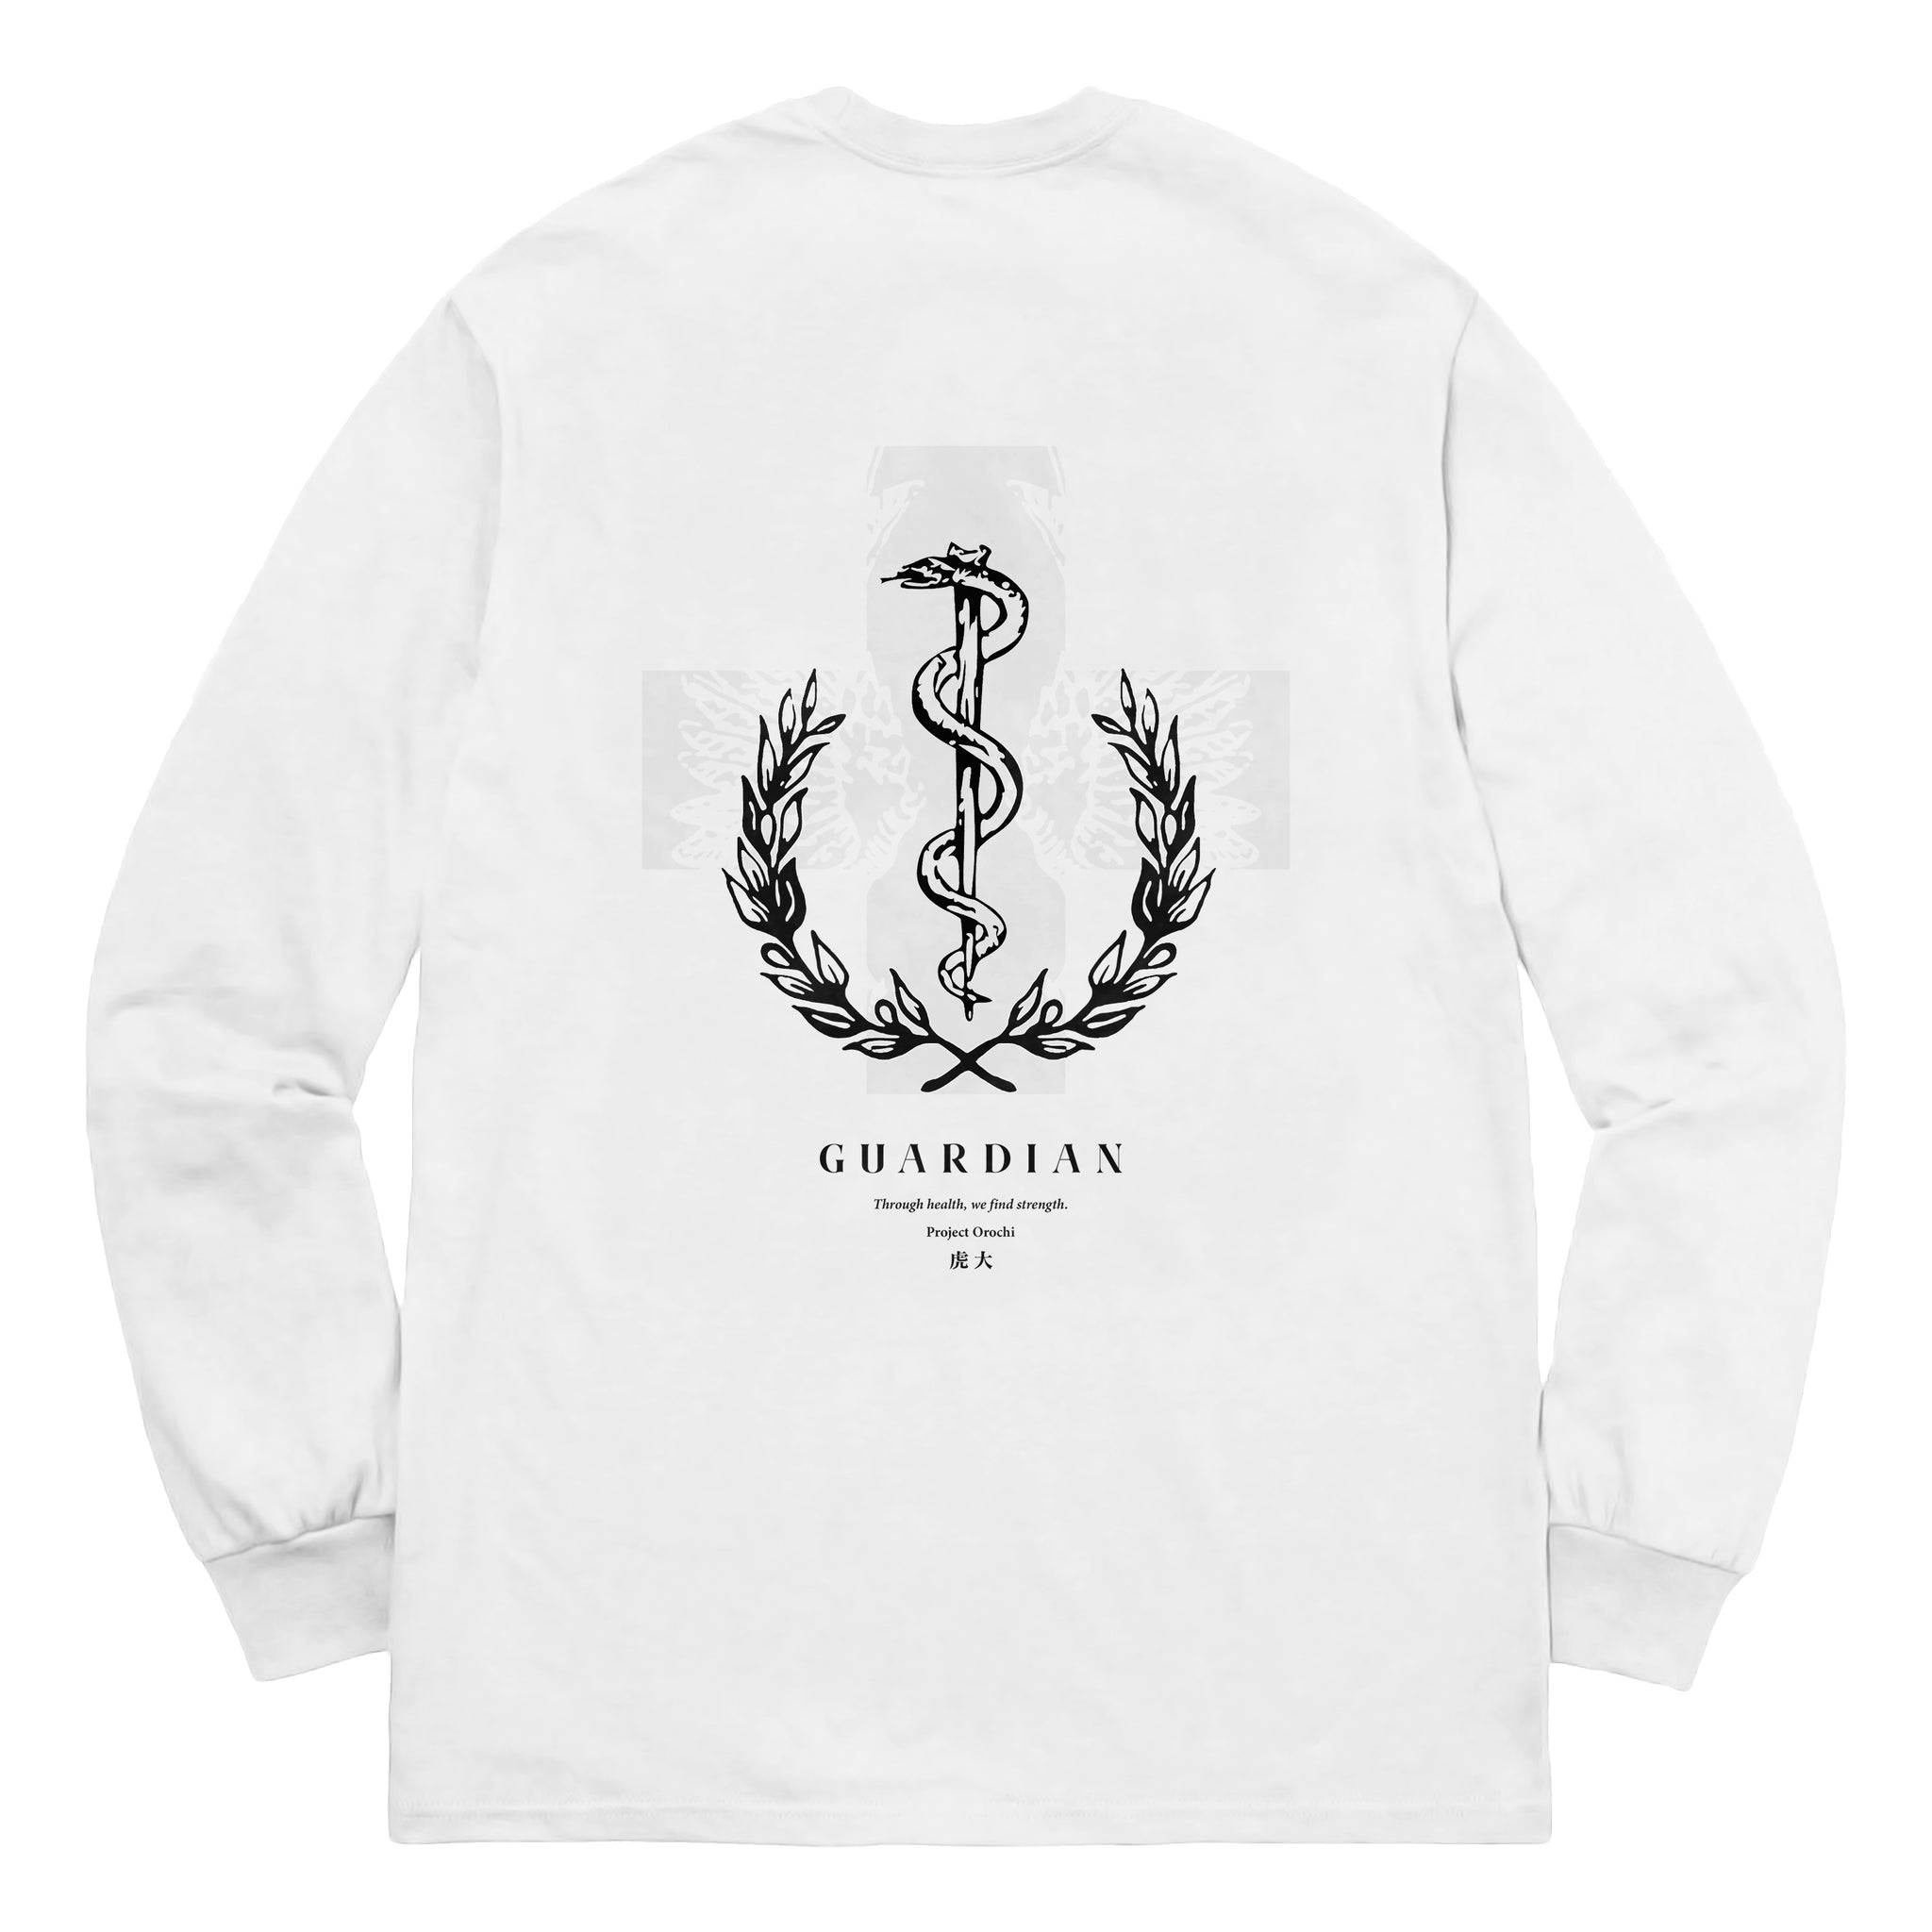 Guardian Long Sleeve - White